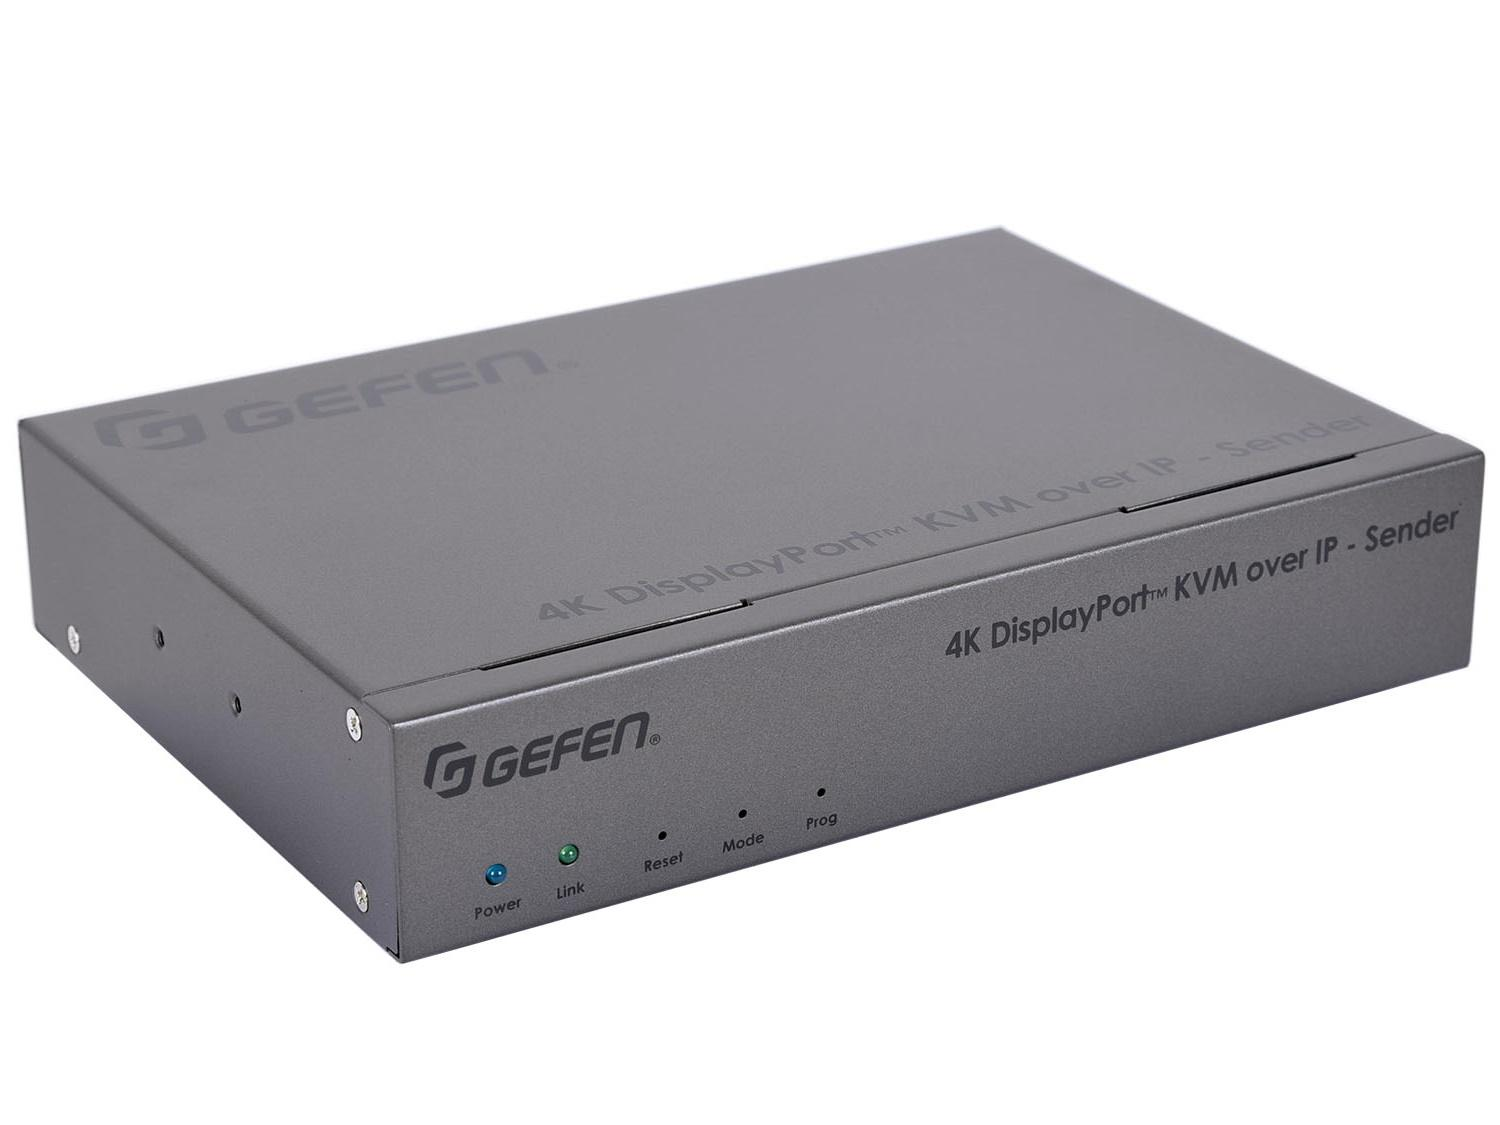 Gefen EXT-DPKA-LANS-TX 4K DisplayPort KVM over IP Extender (Transmitter) with USB/Audio/RS-232/IR